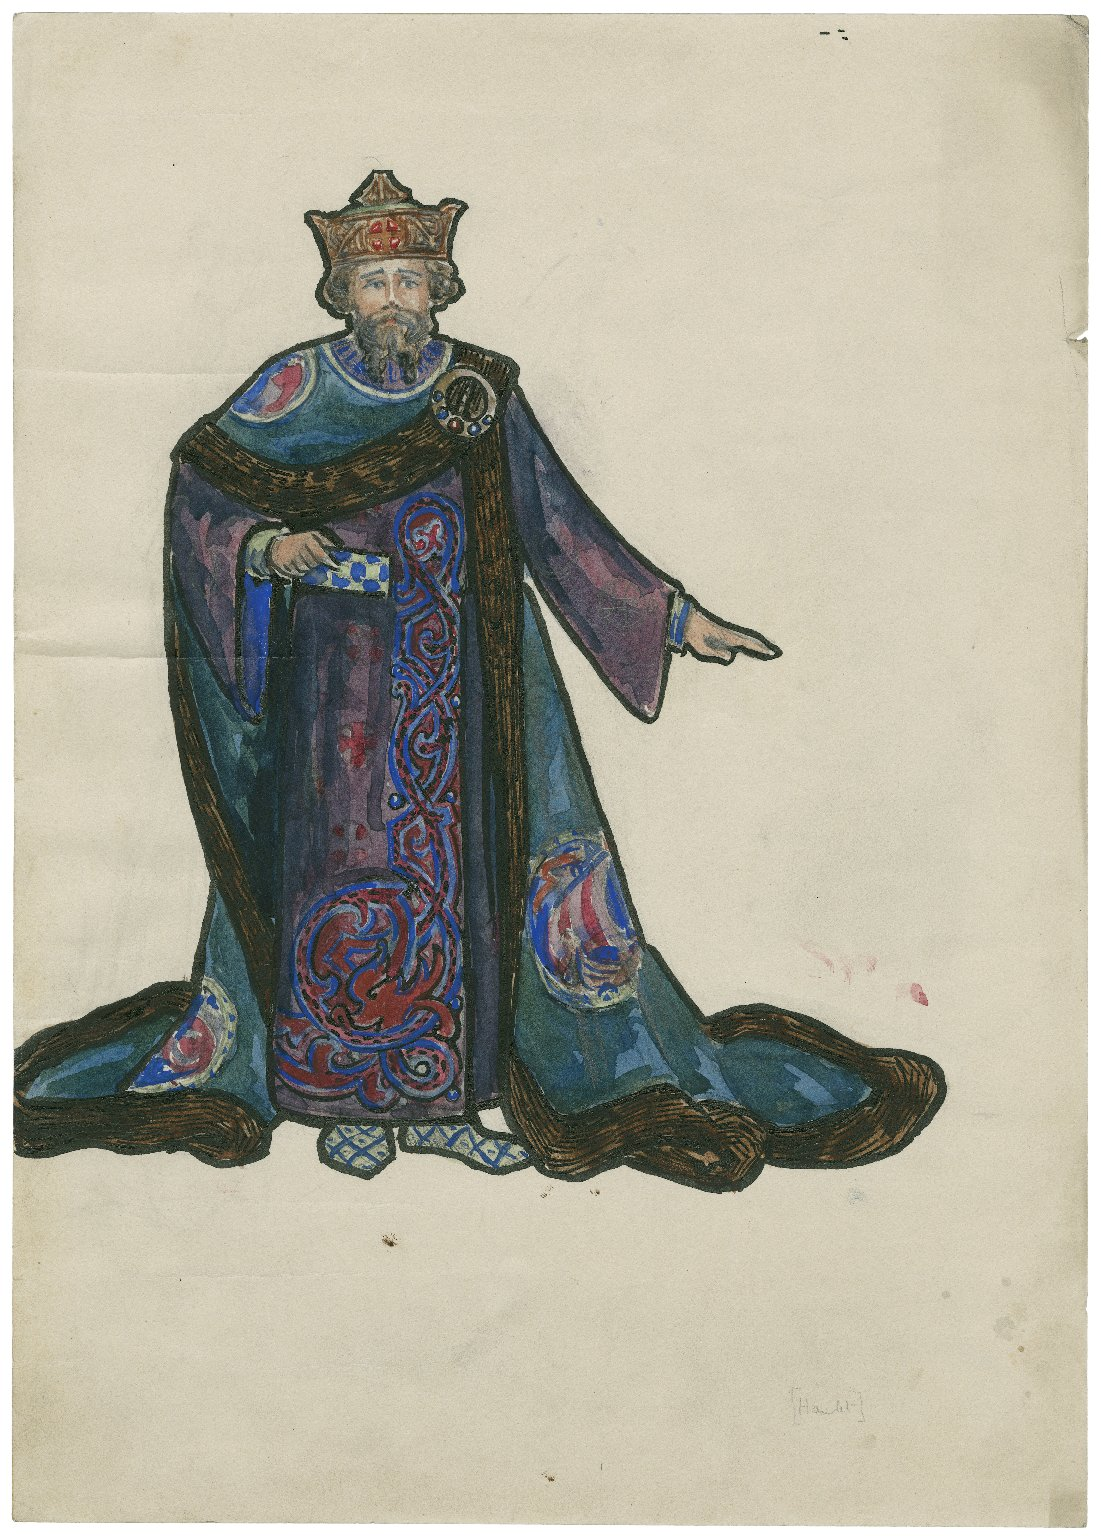 Hamlet. Costume design for a character.